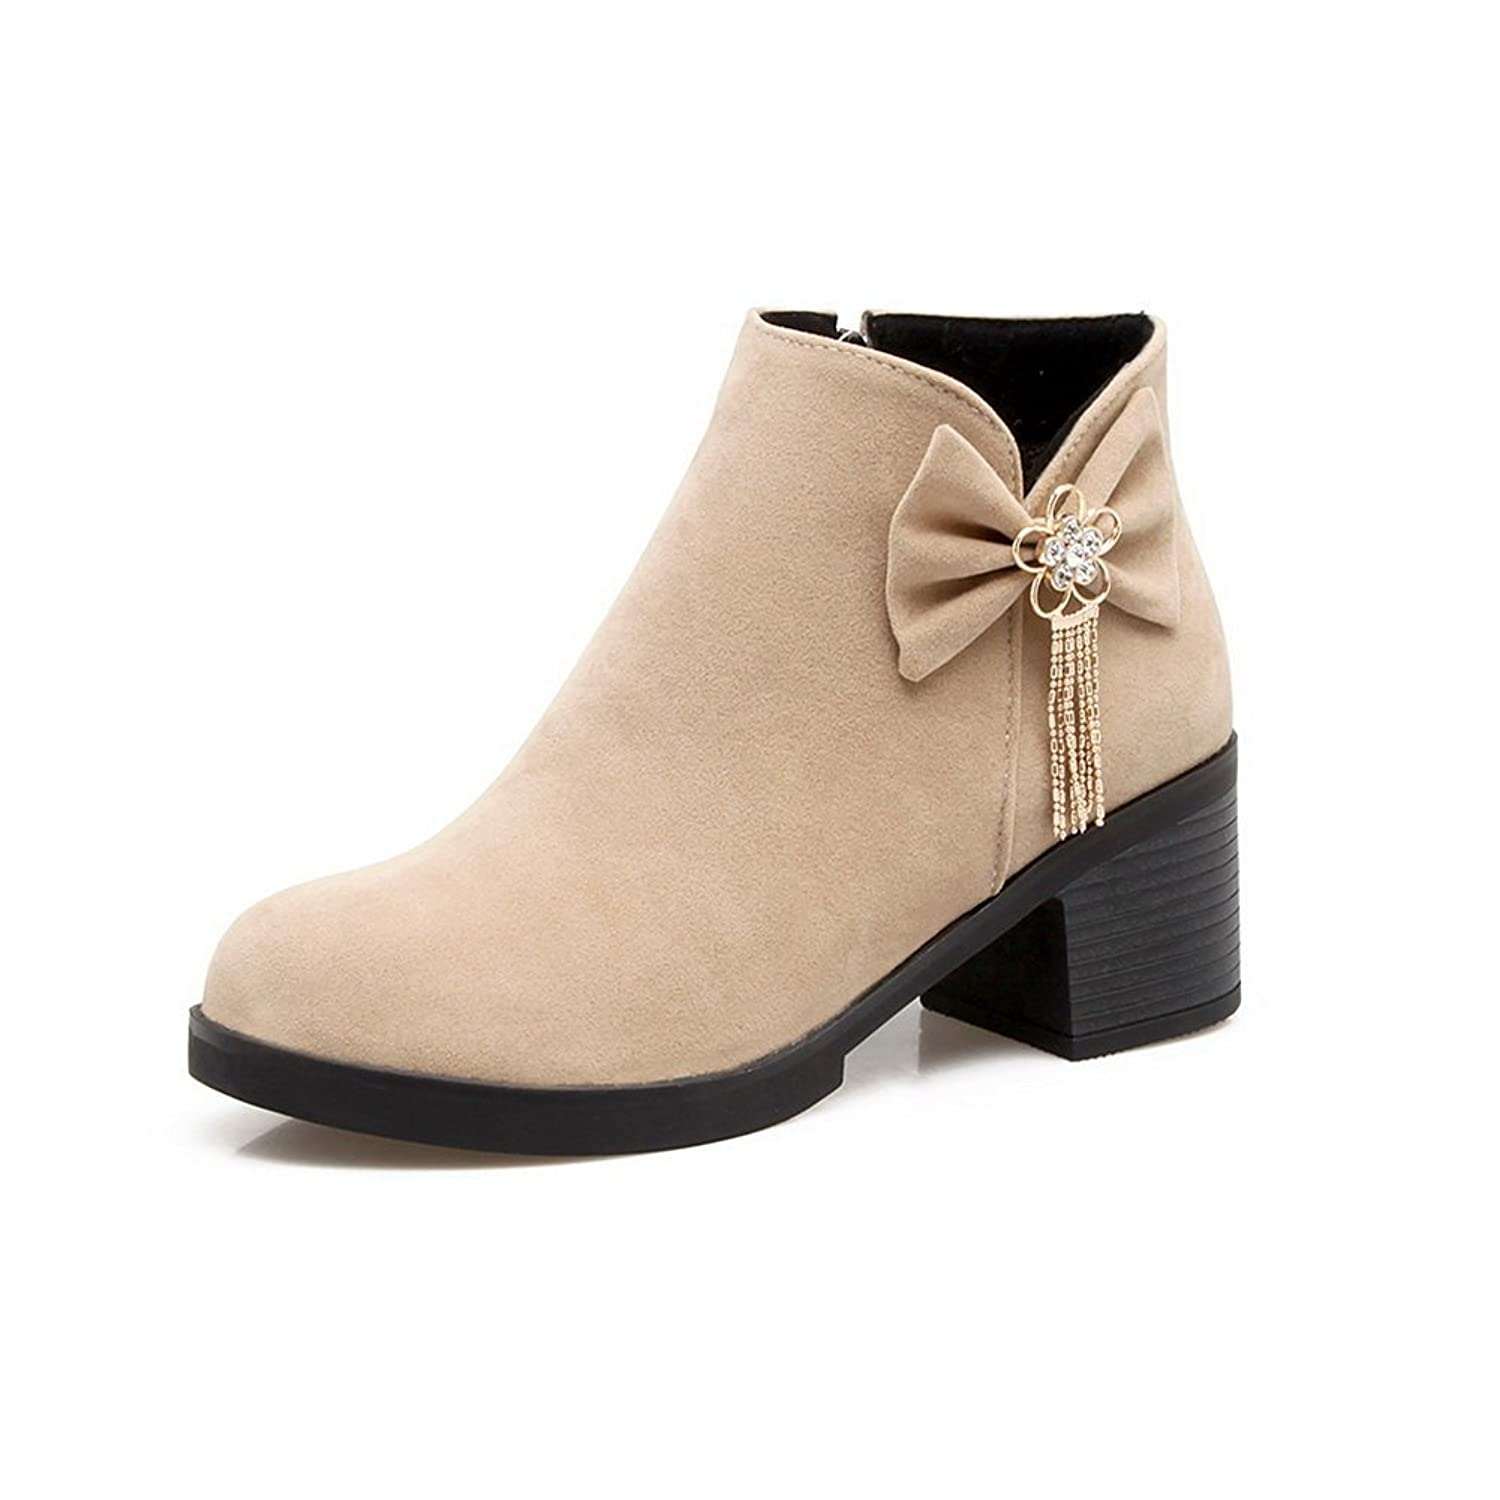 AdeeSu Womens Ankle-High Chunky Heels Retro Bows Suede Boots SXC02435